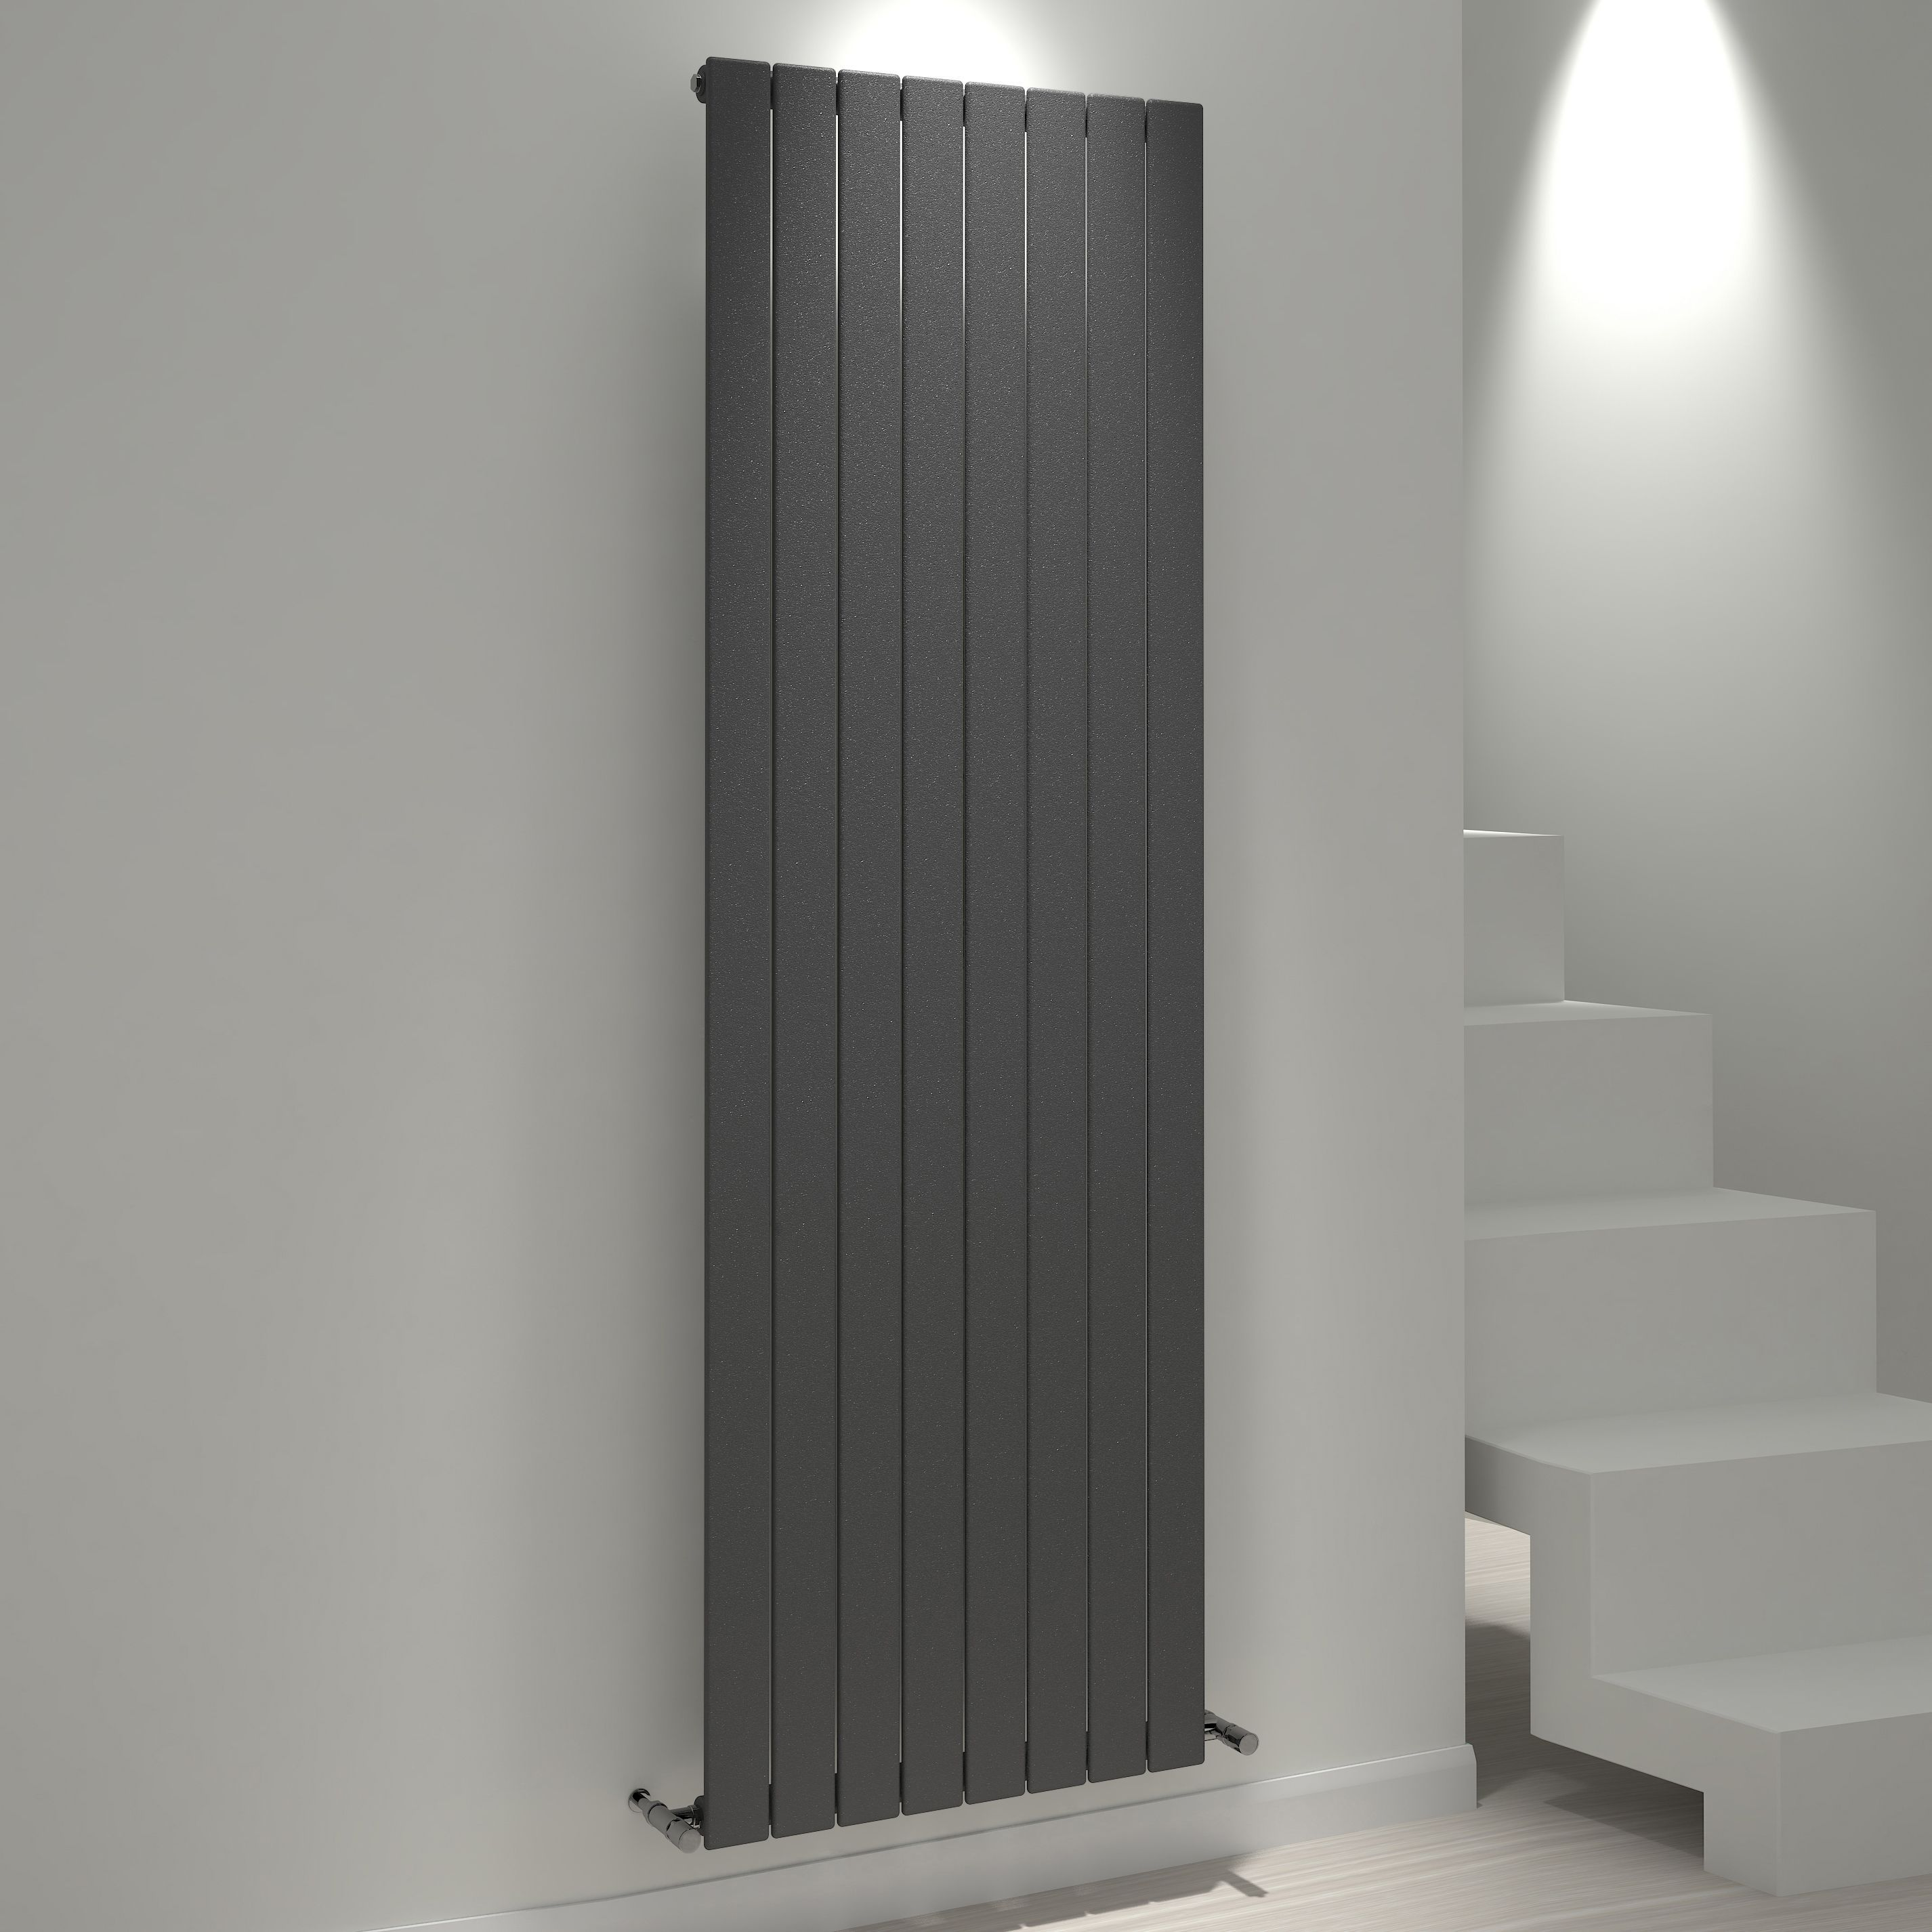 Kudox Tira Vertical Radiator Anthracite (h)1800 Mm (w)588 Mm